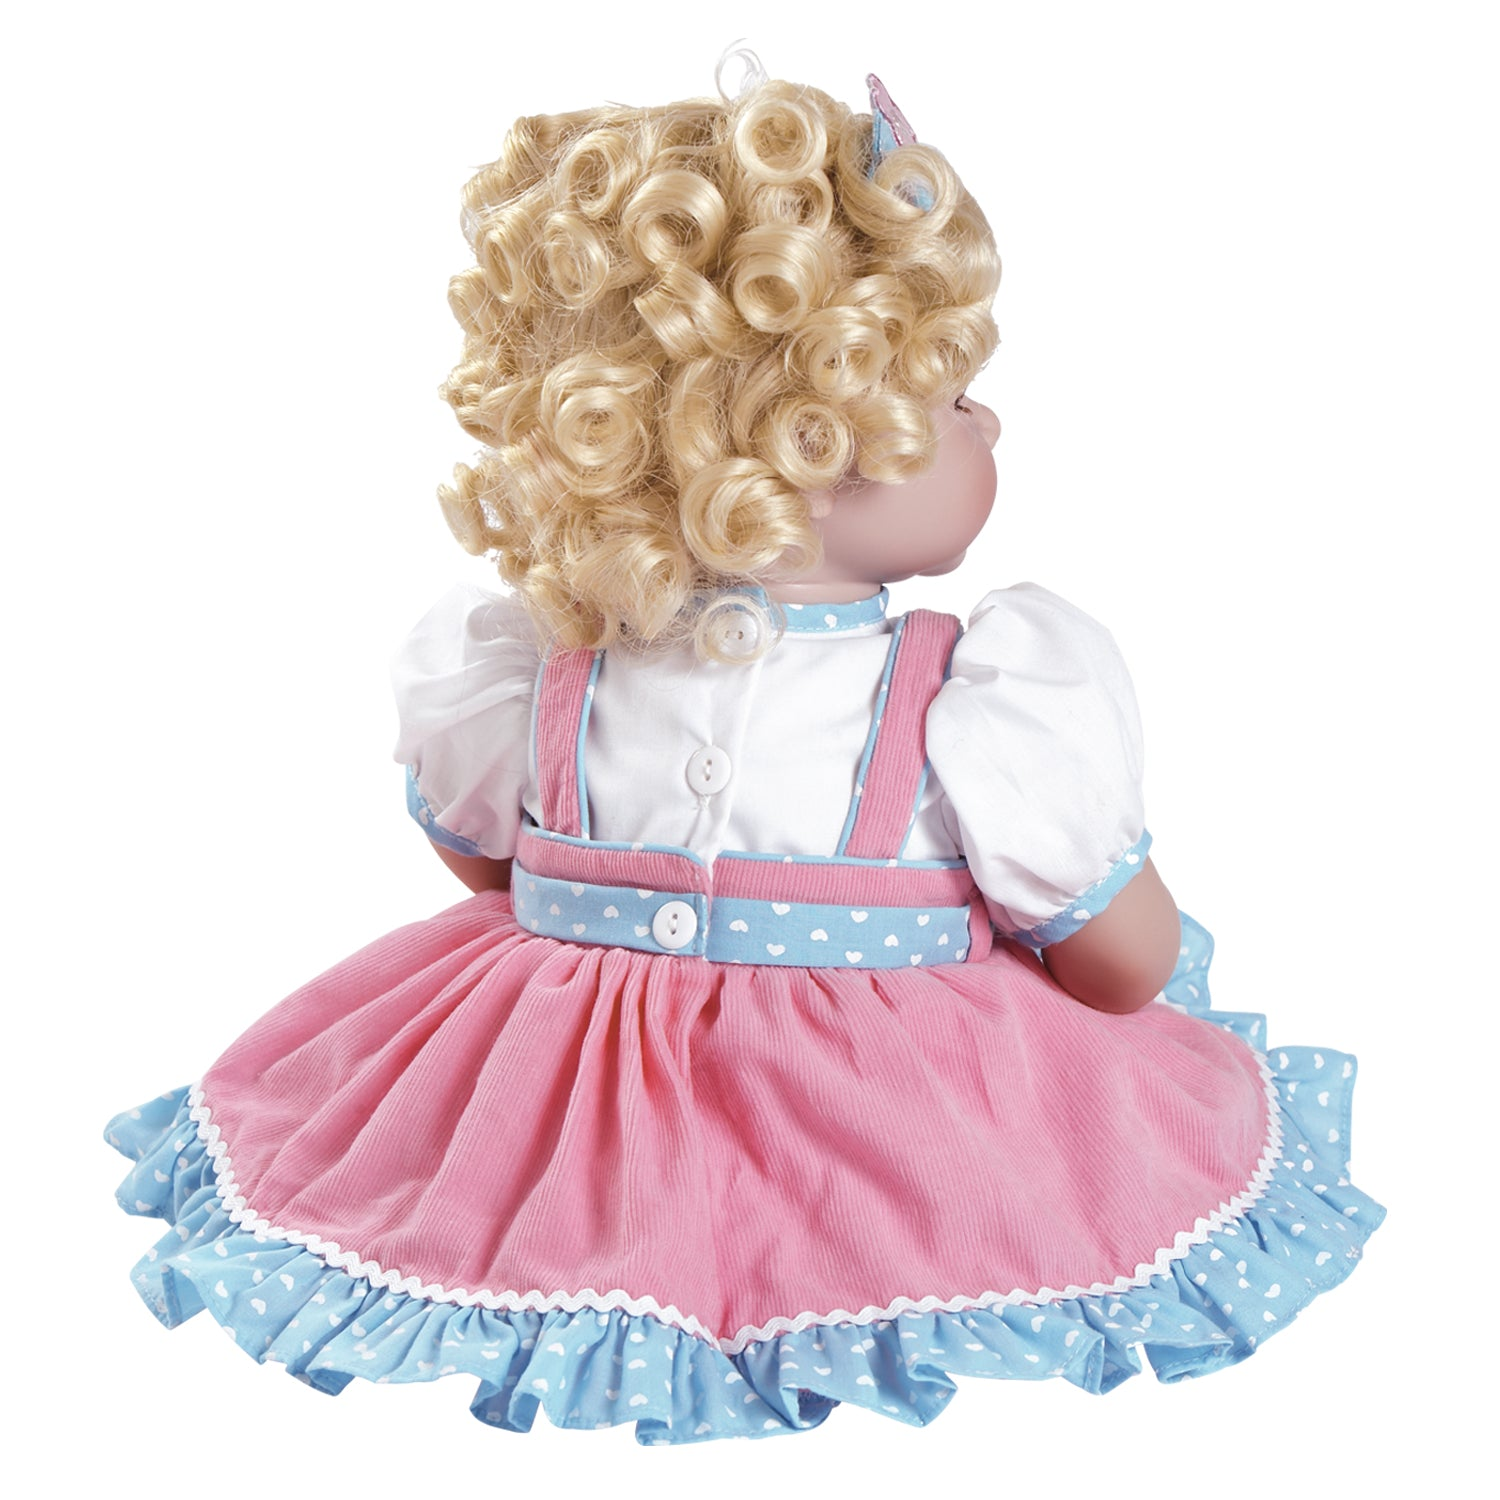 Adora Dolls Toddler Time Chick Chat Doll 20015003 Good S